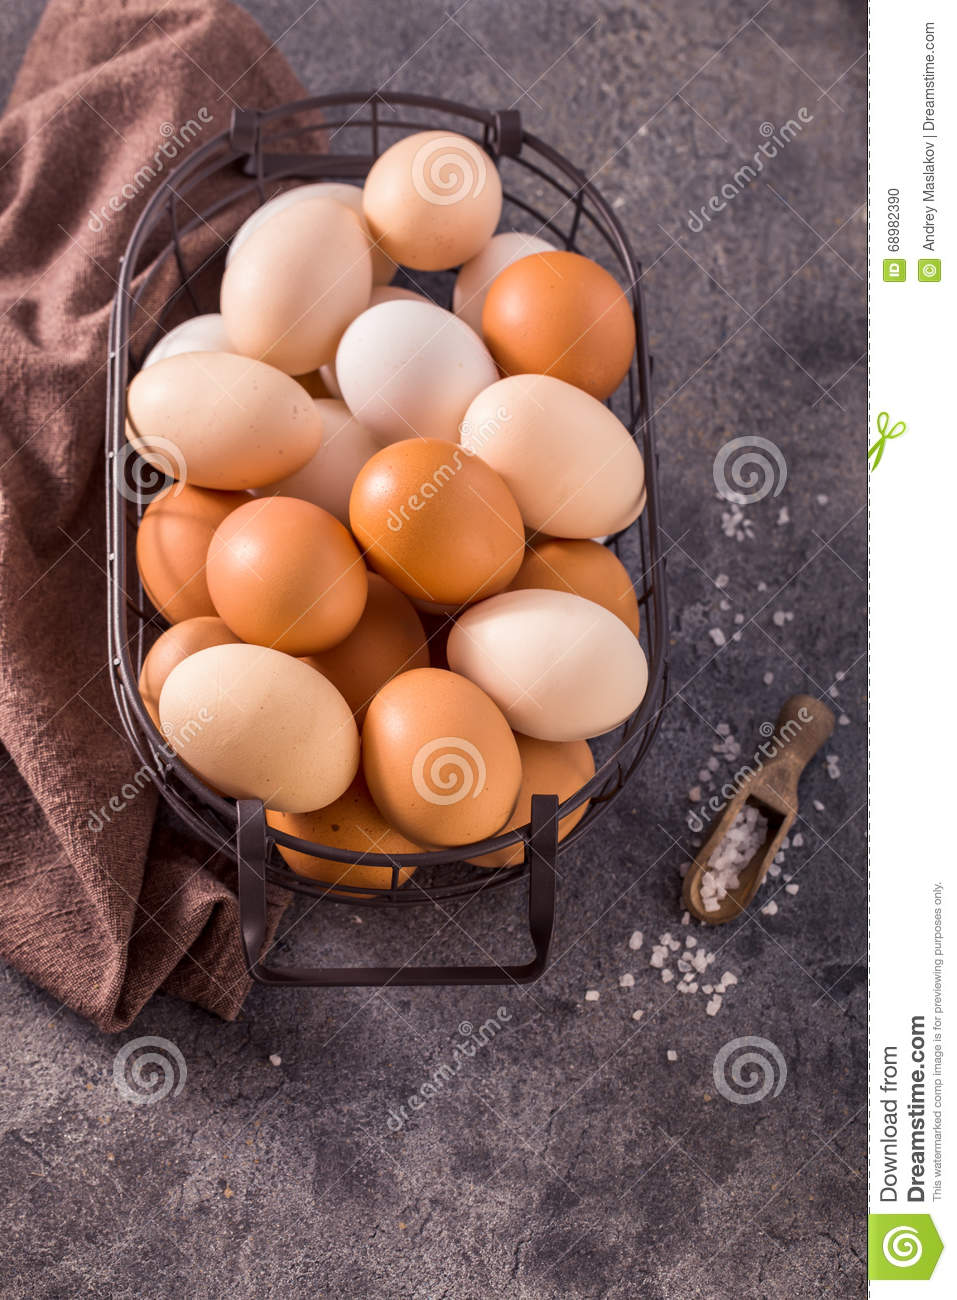 Eggs in wire basket on gray background above view